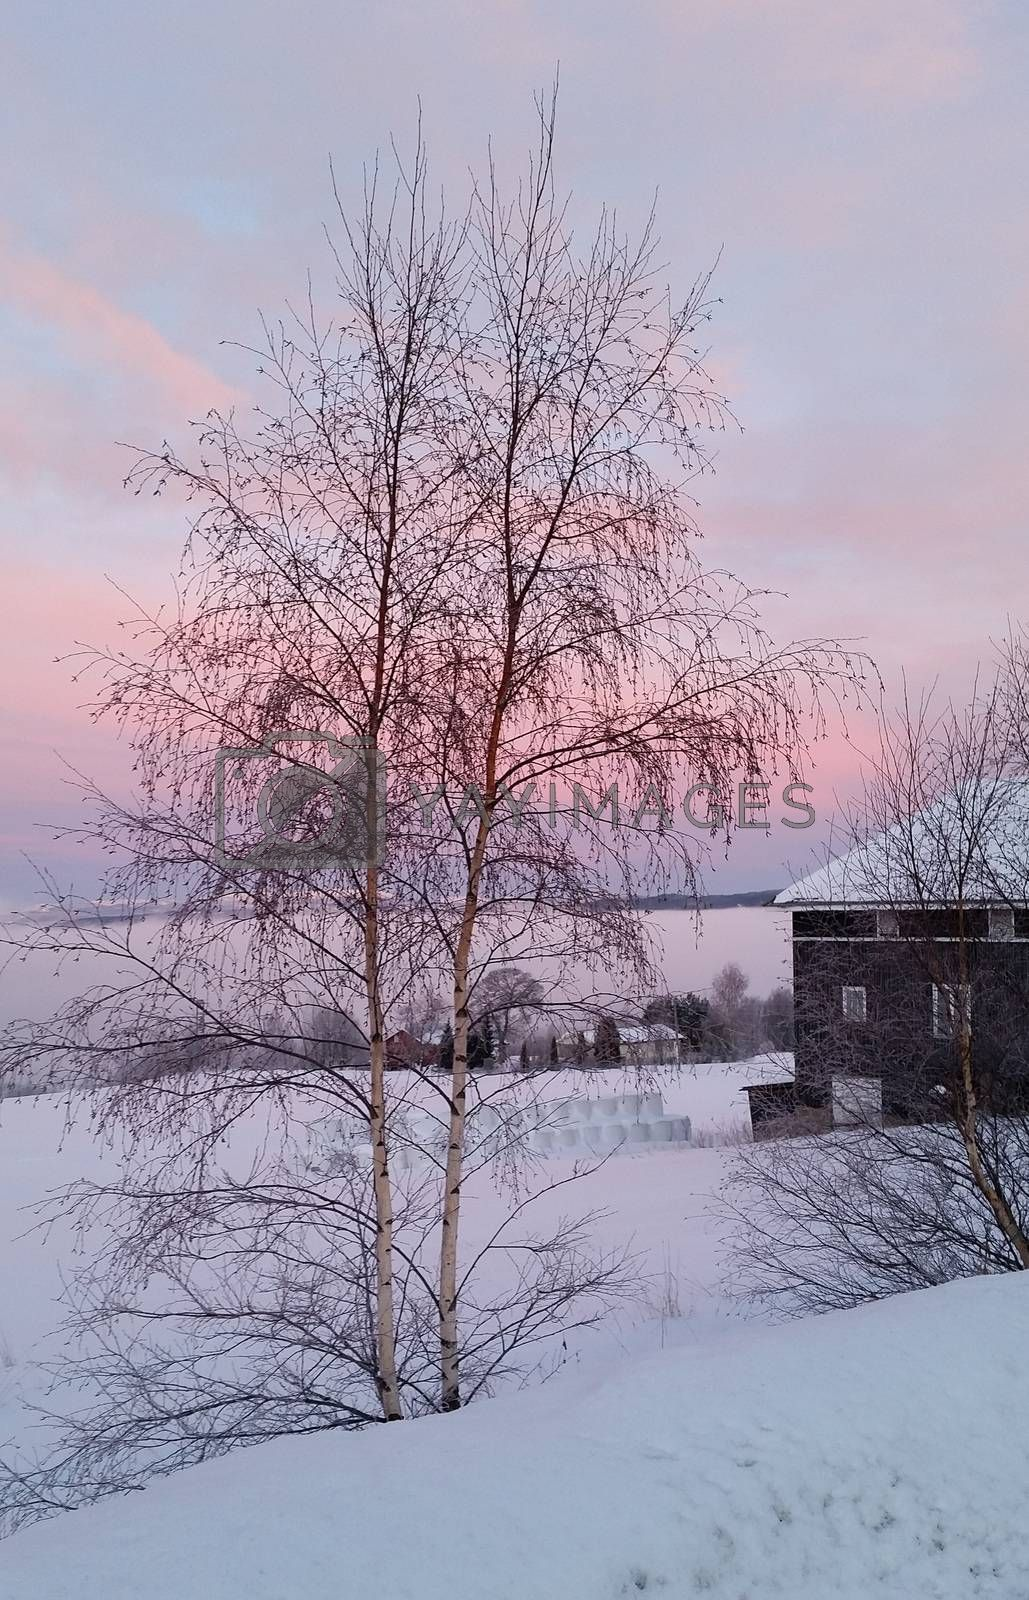 Royalty free image of Winter in Norway by camillaholm